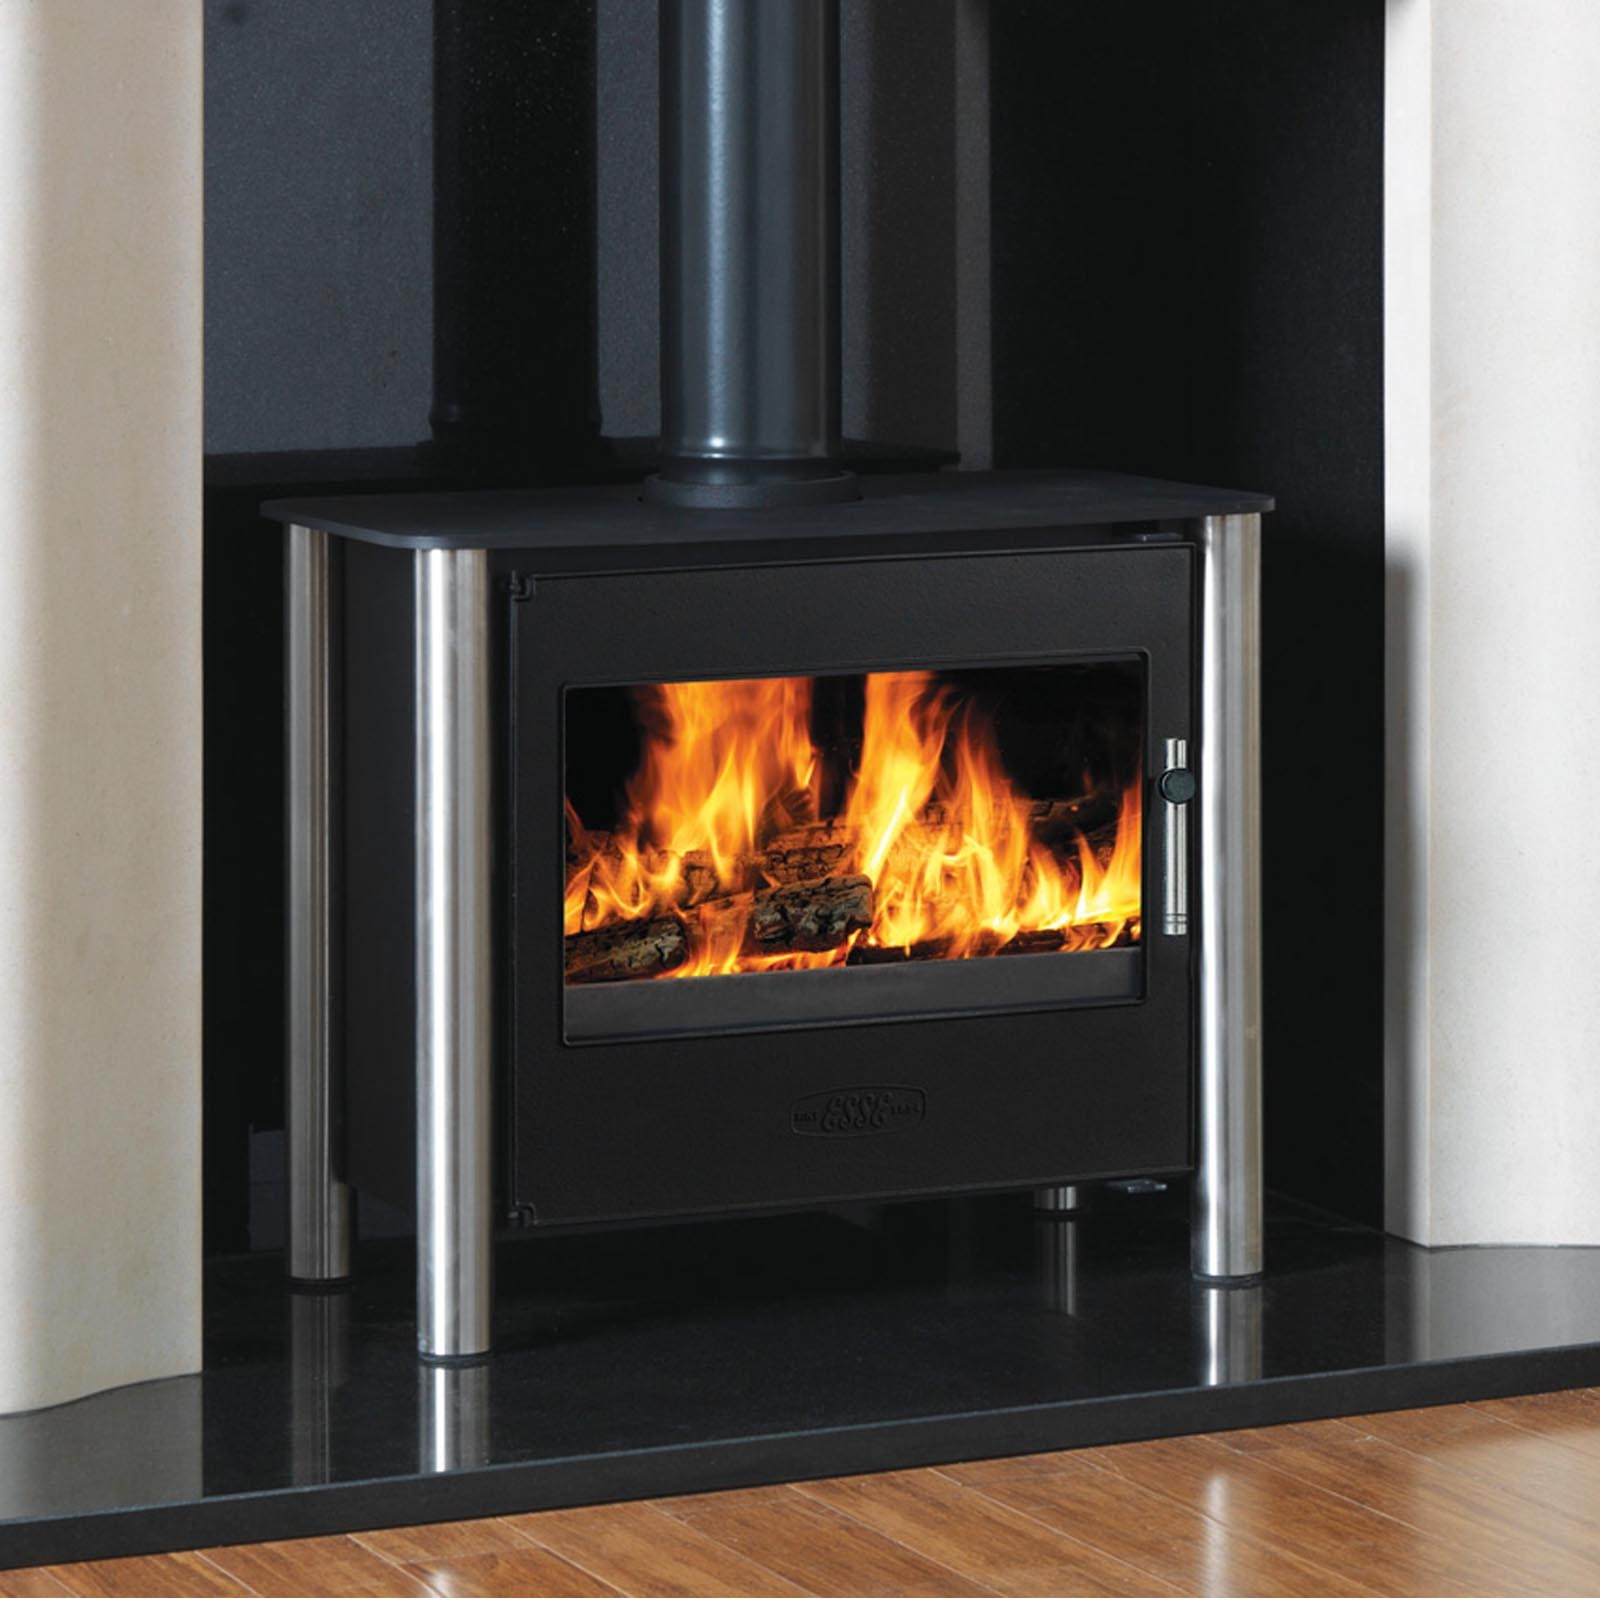 Unbeatable Uk Deals Esse 125 Multifuel Woodburning Gas